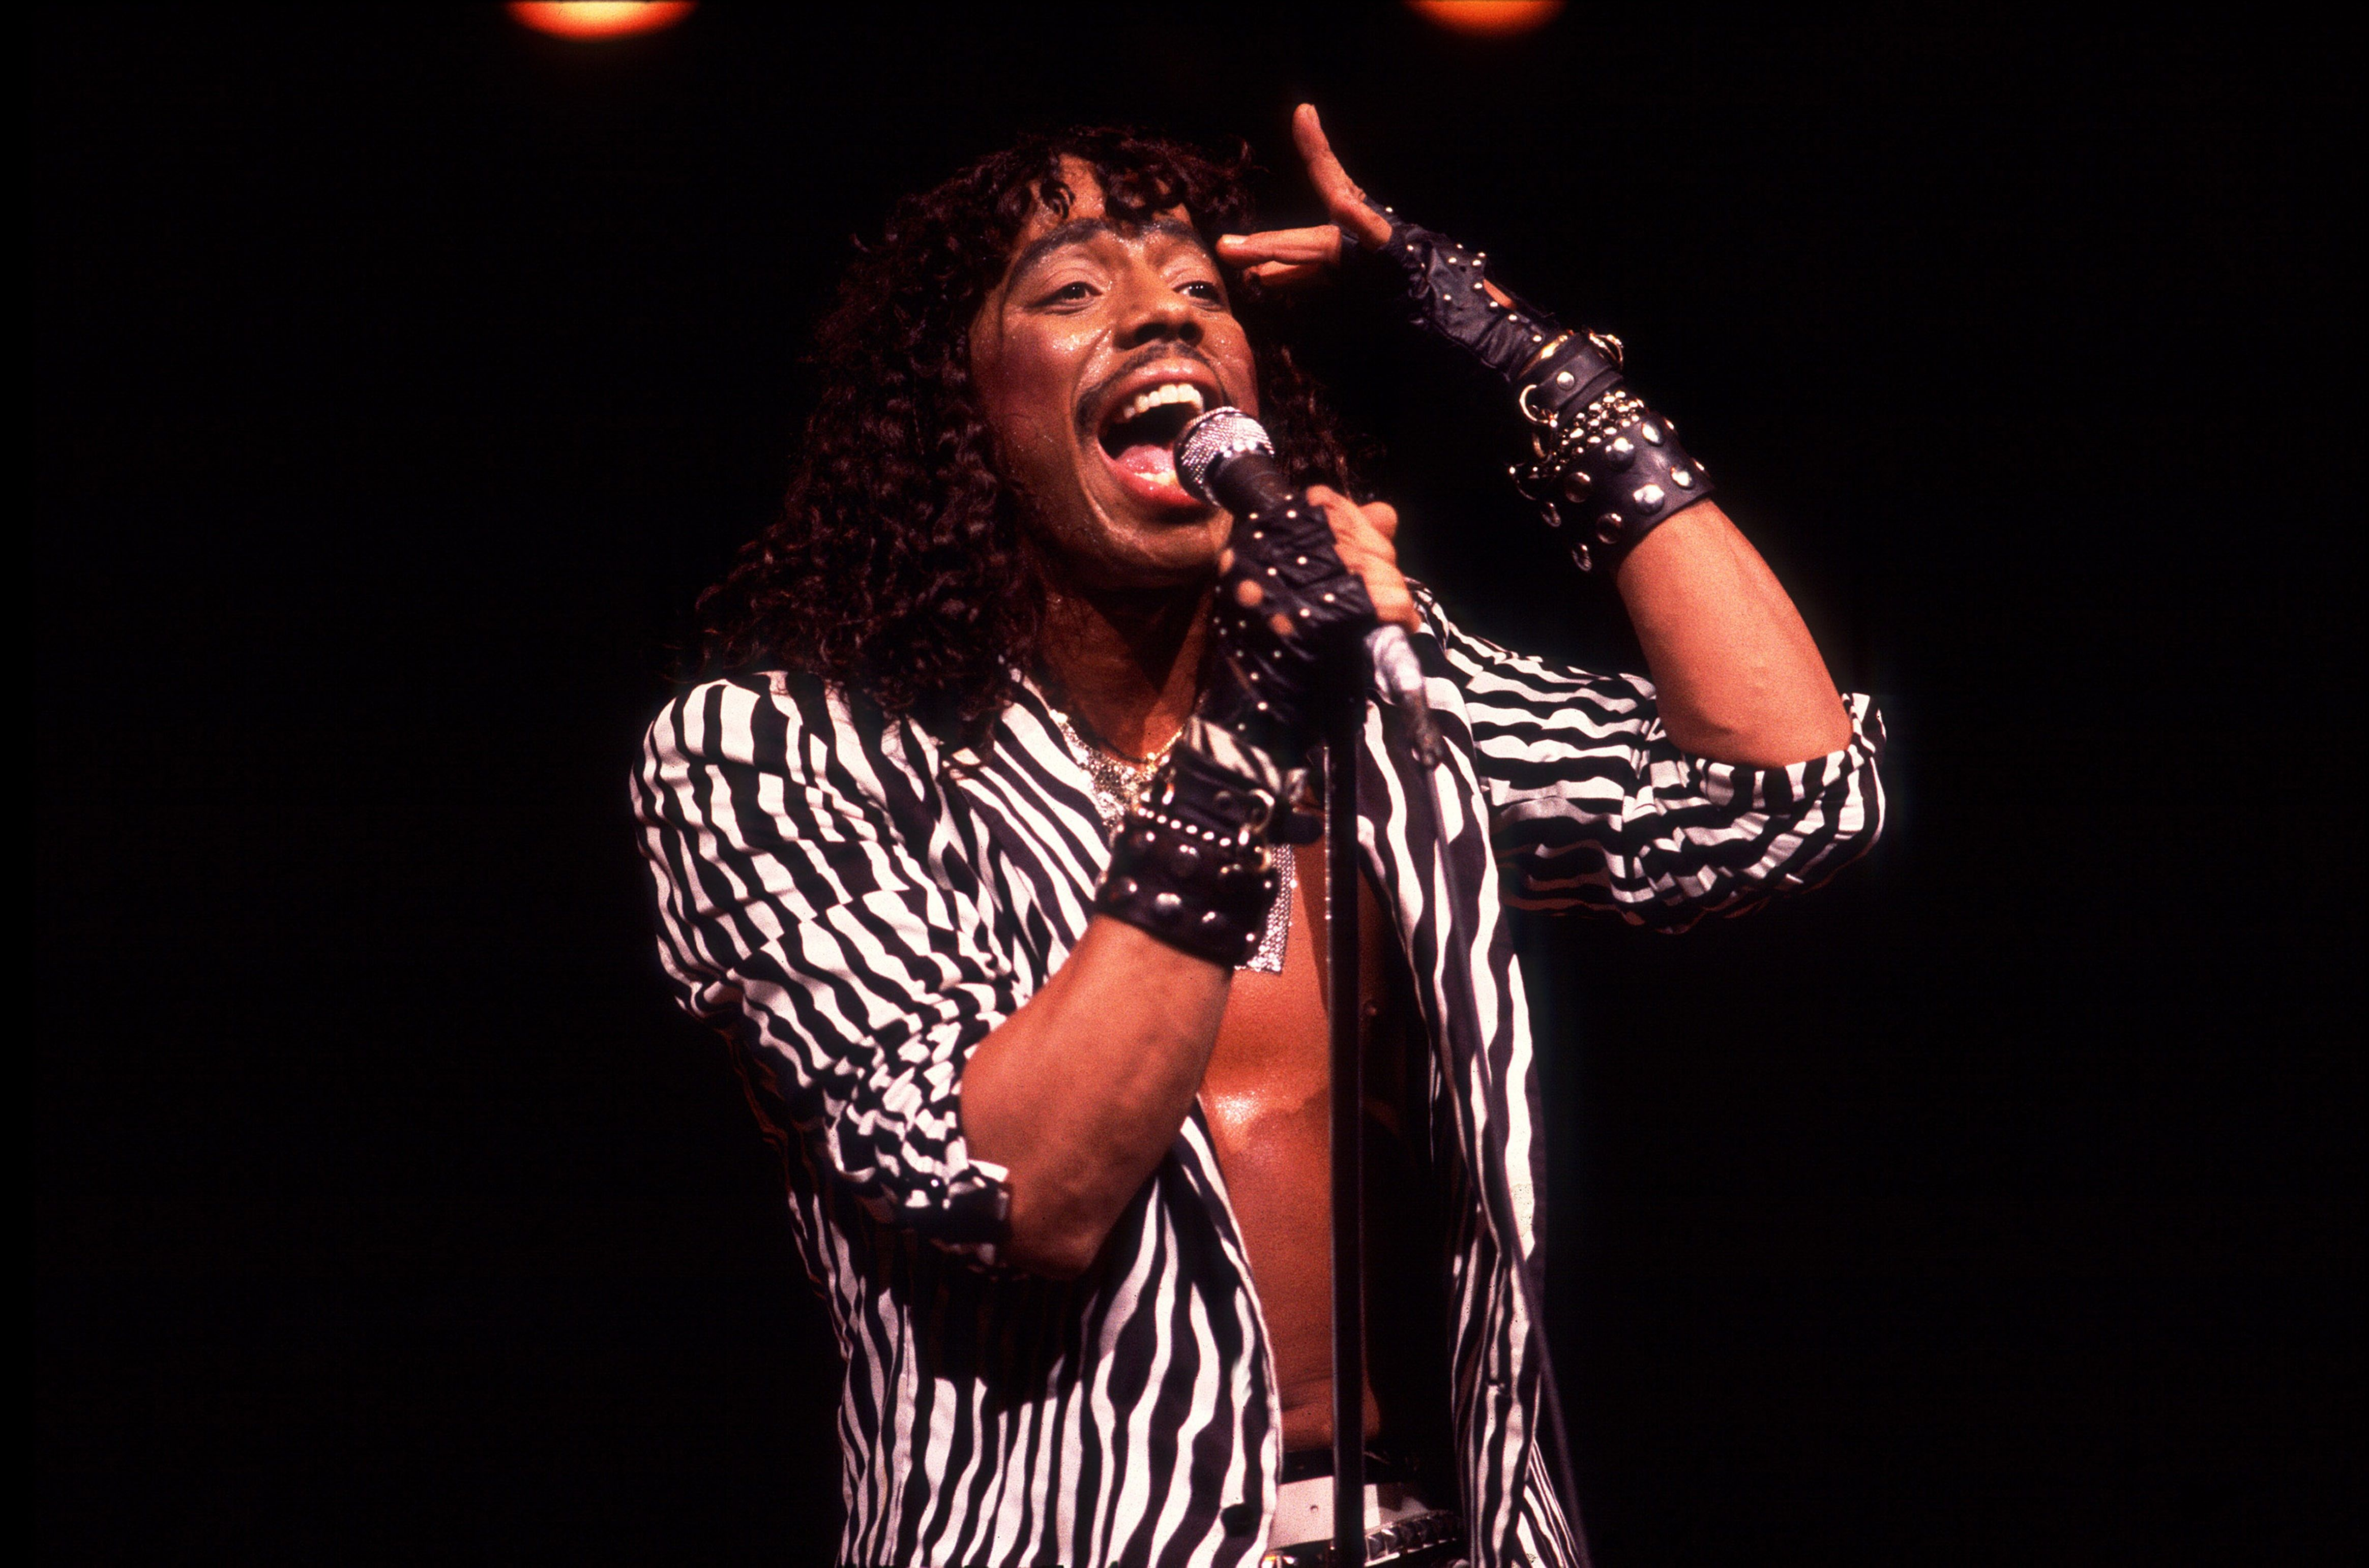 Born February 1 (With images) Rick james, Rick james